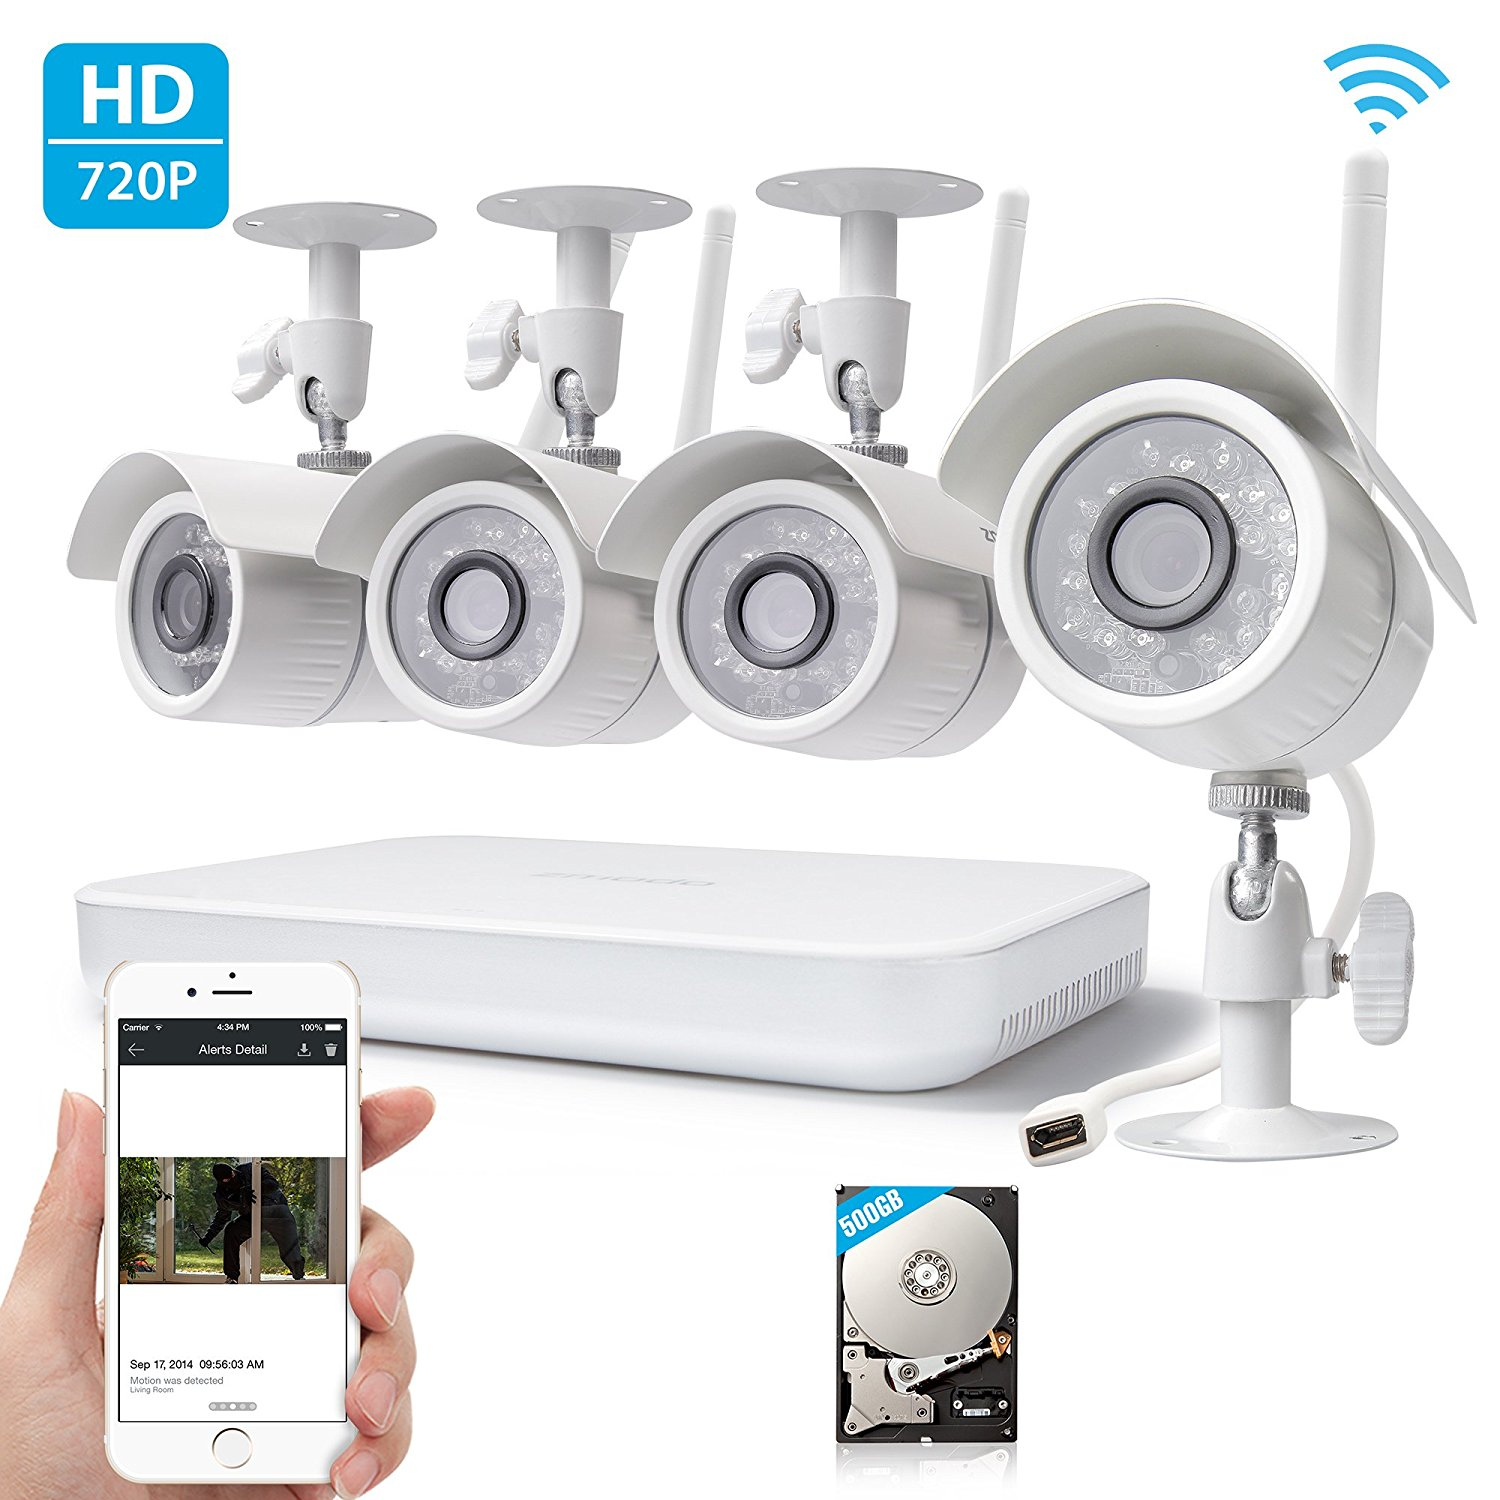 smart home security cameras smart home devices. Black Bedroom Furniture Sets. Home Design Ideas